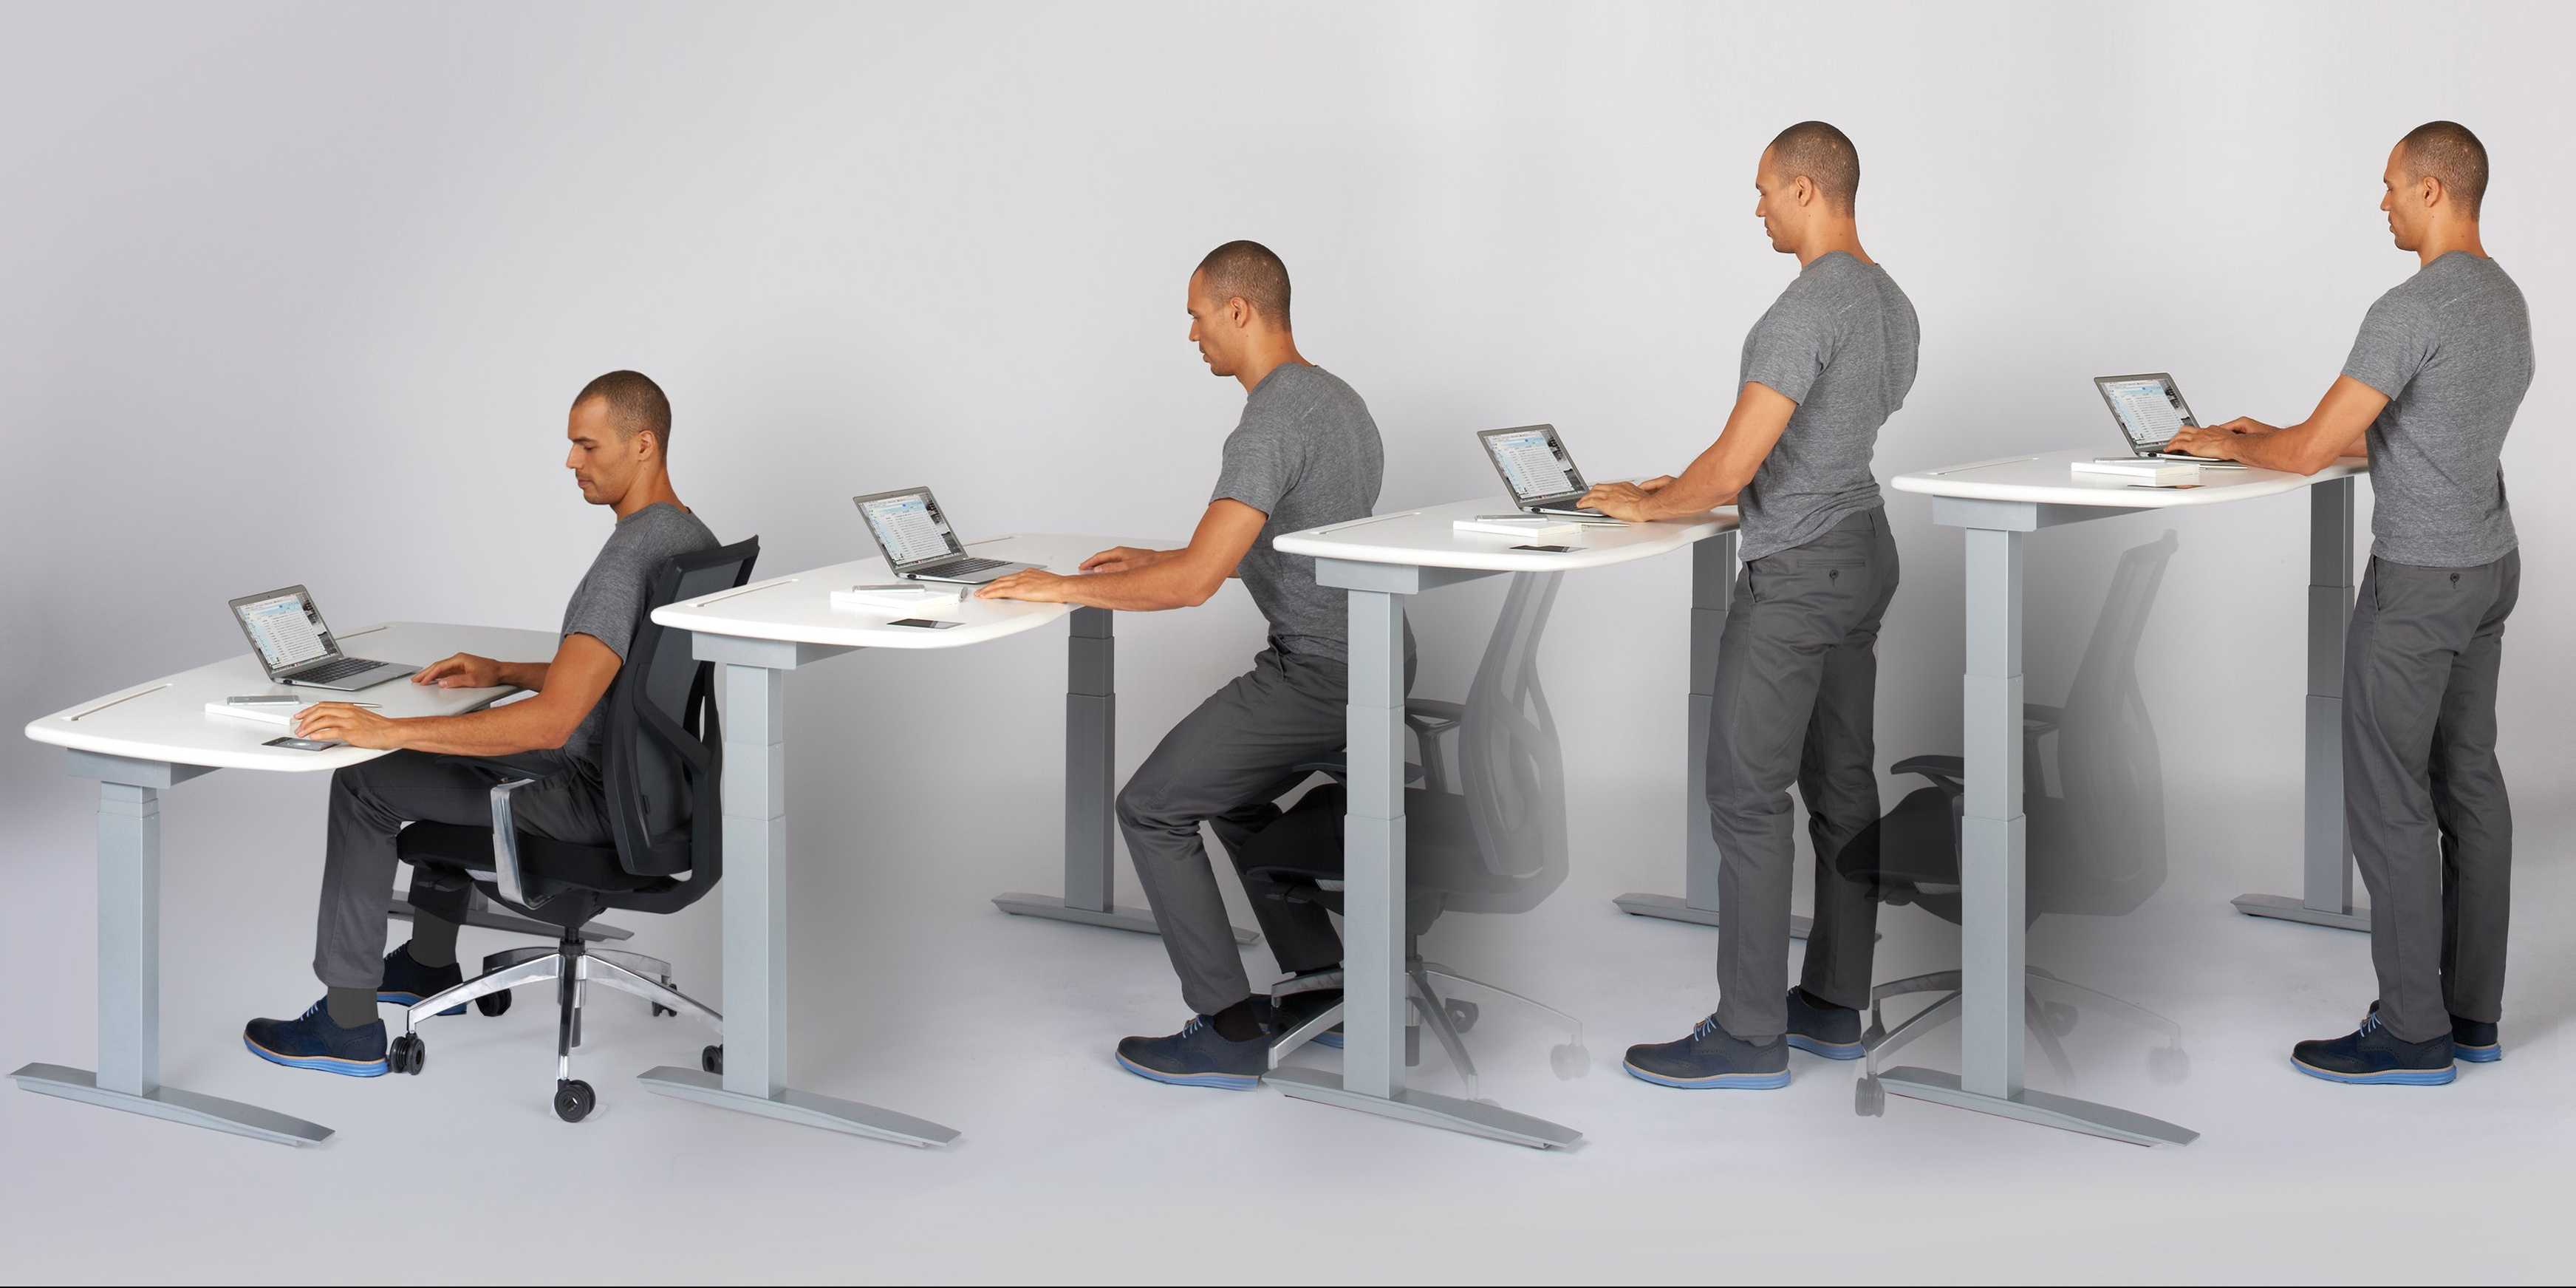 magic chair while genius exercise for the office most work fitness best desk at workers sitting exercises computer